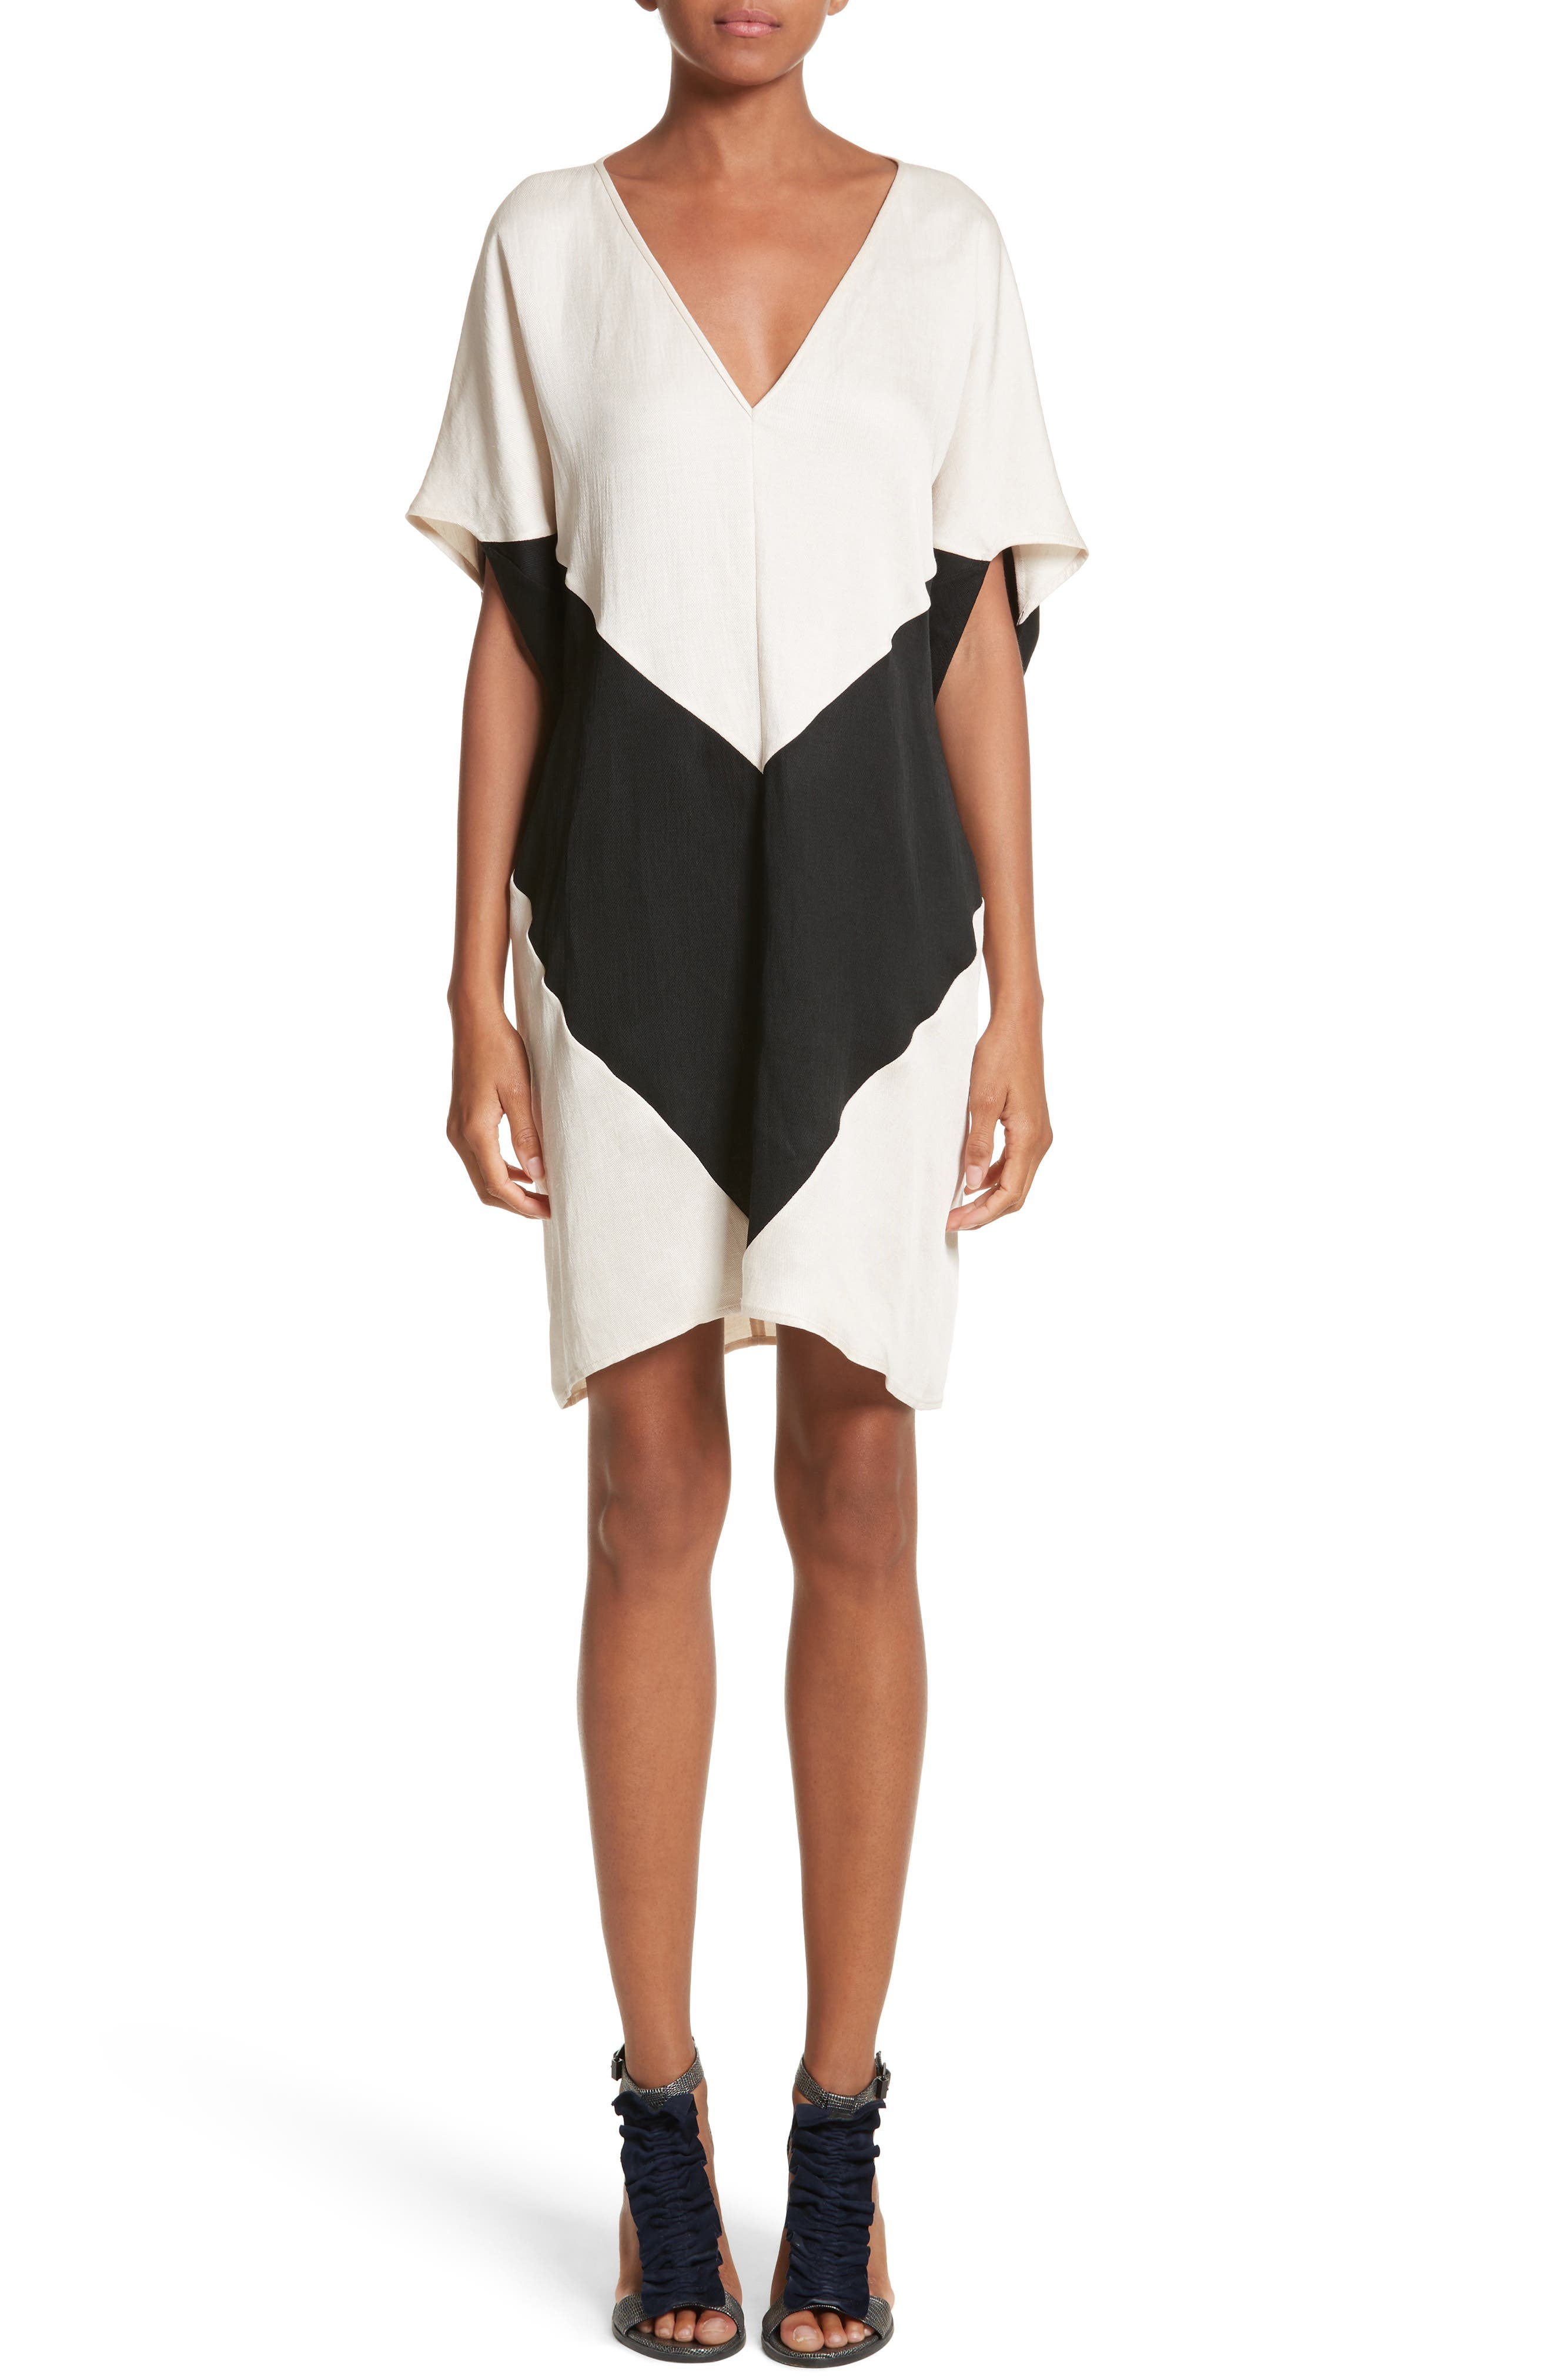 Zero + Maria Cornejo Colorblock Dress